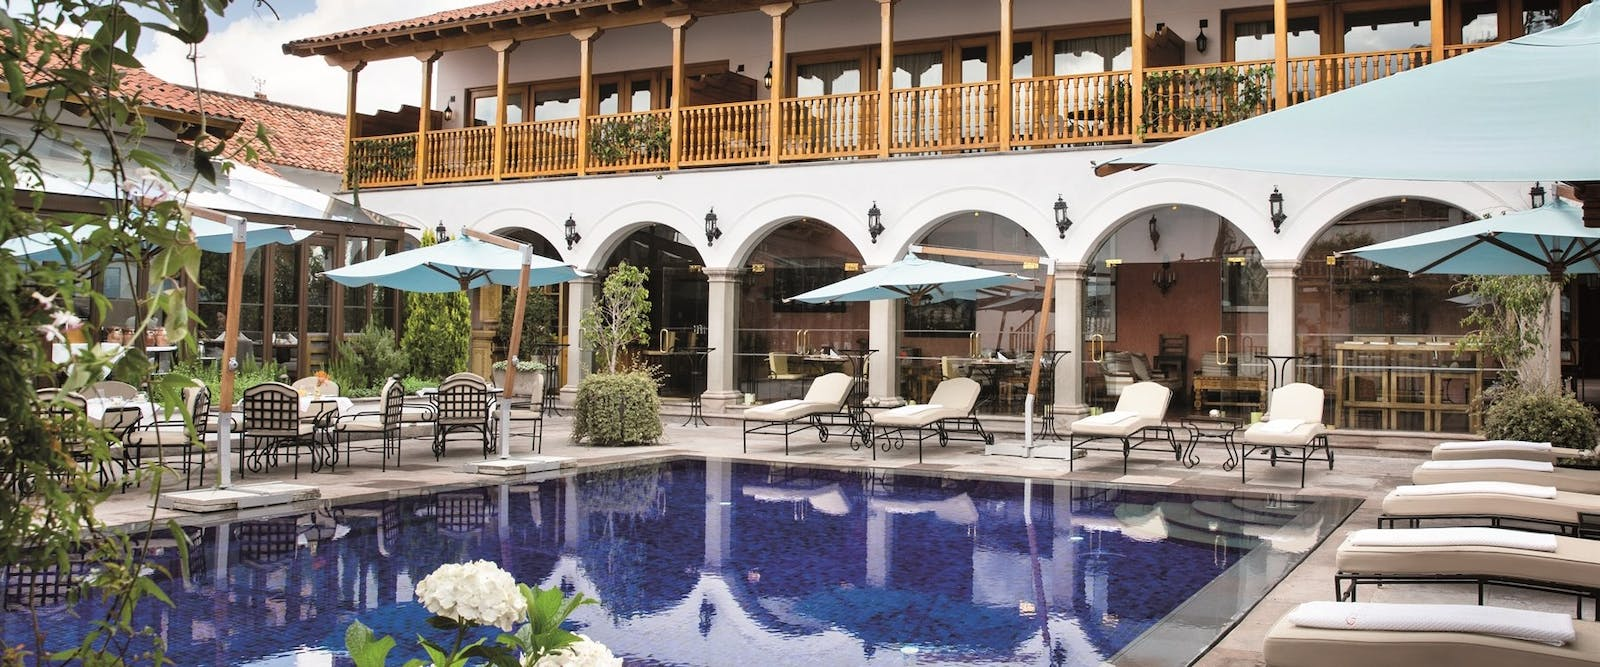 Swimming pool area at Palacio Nazarenas, A Belmond Hotel, Cusco